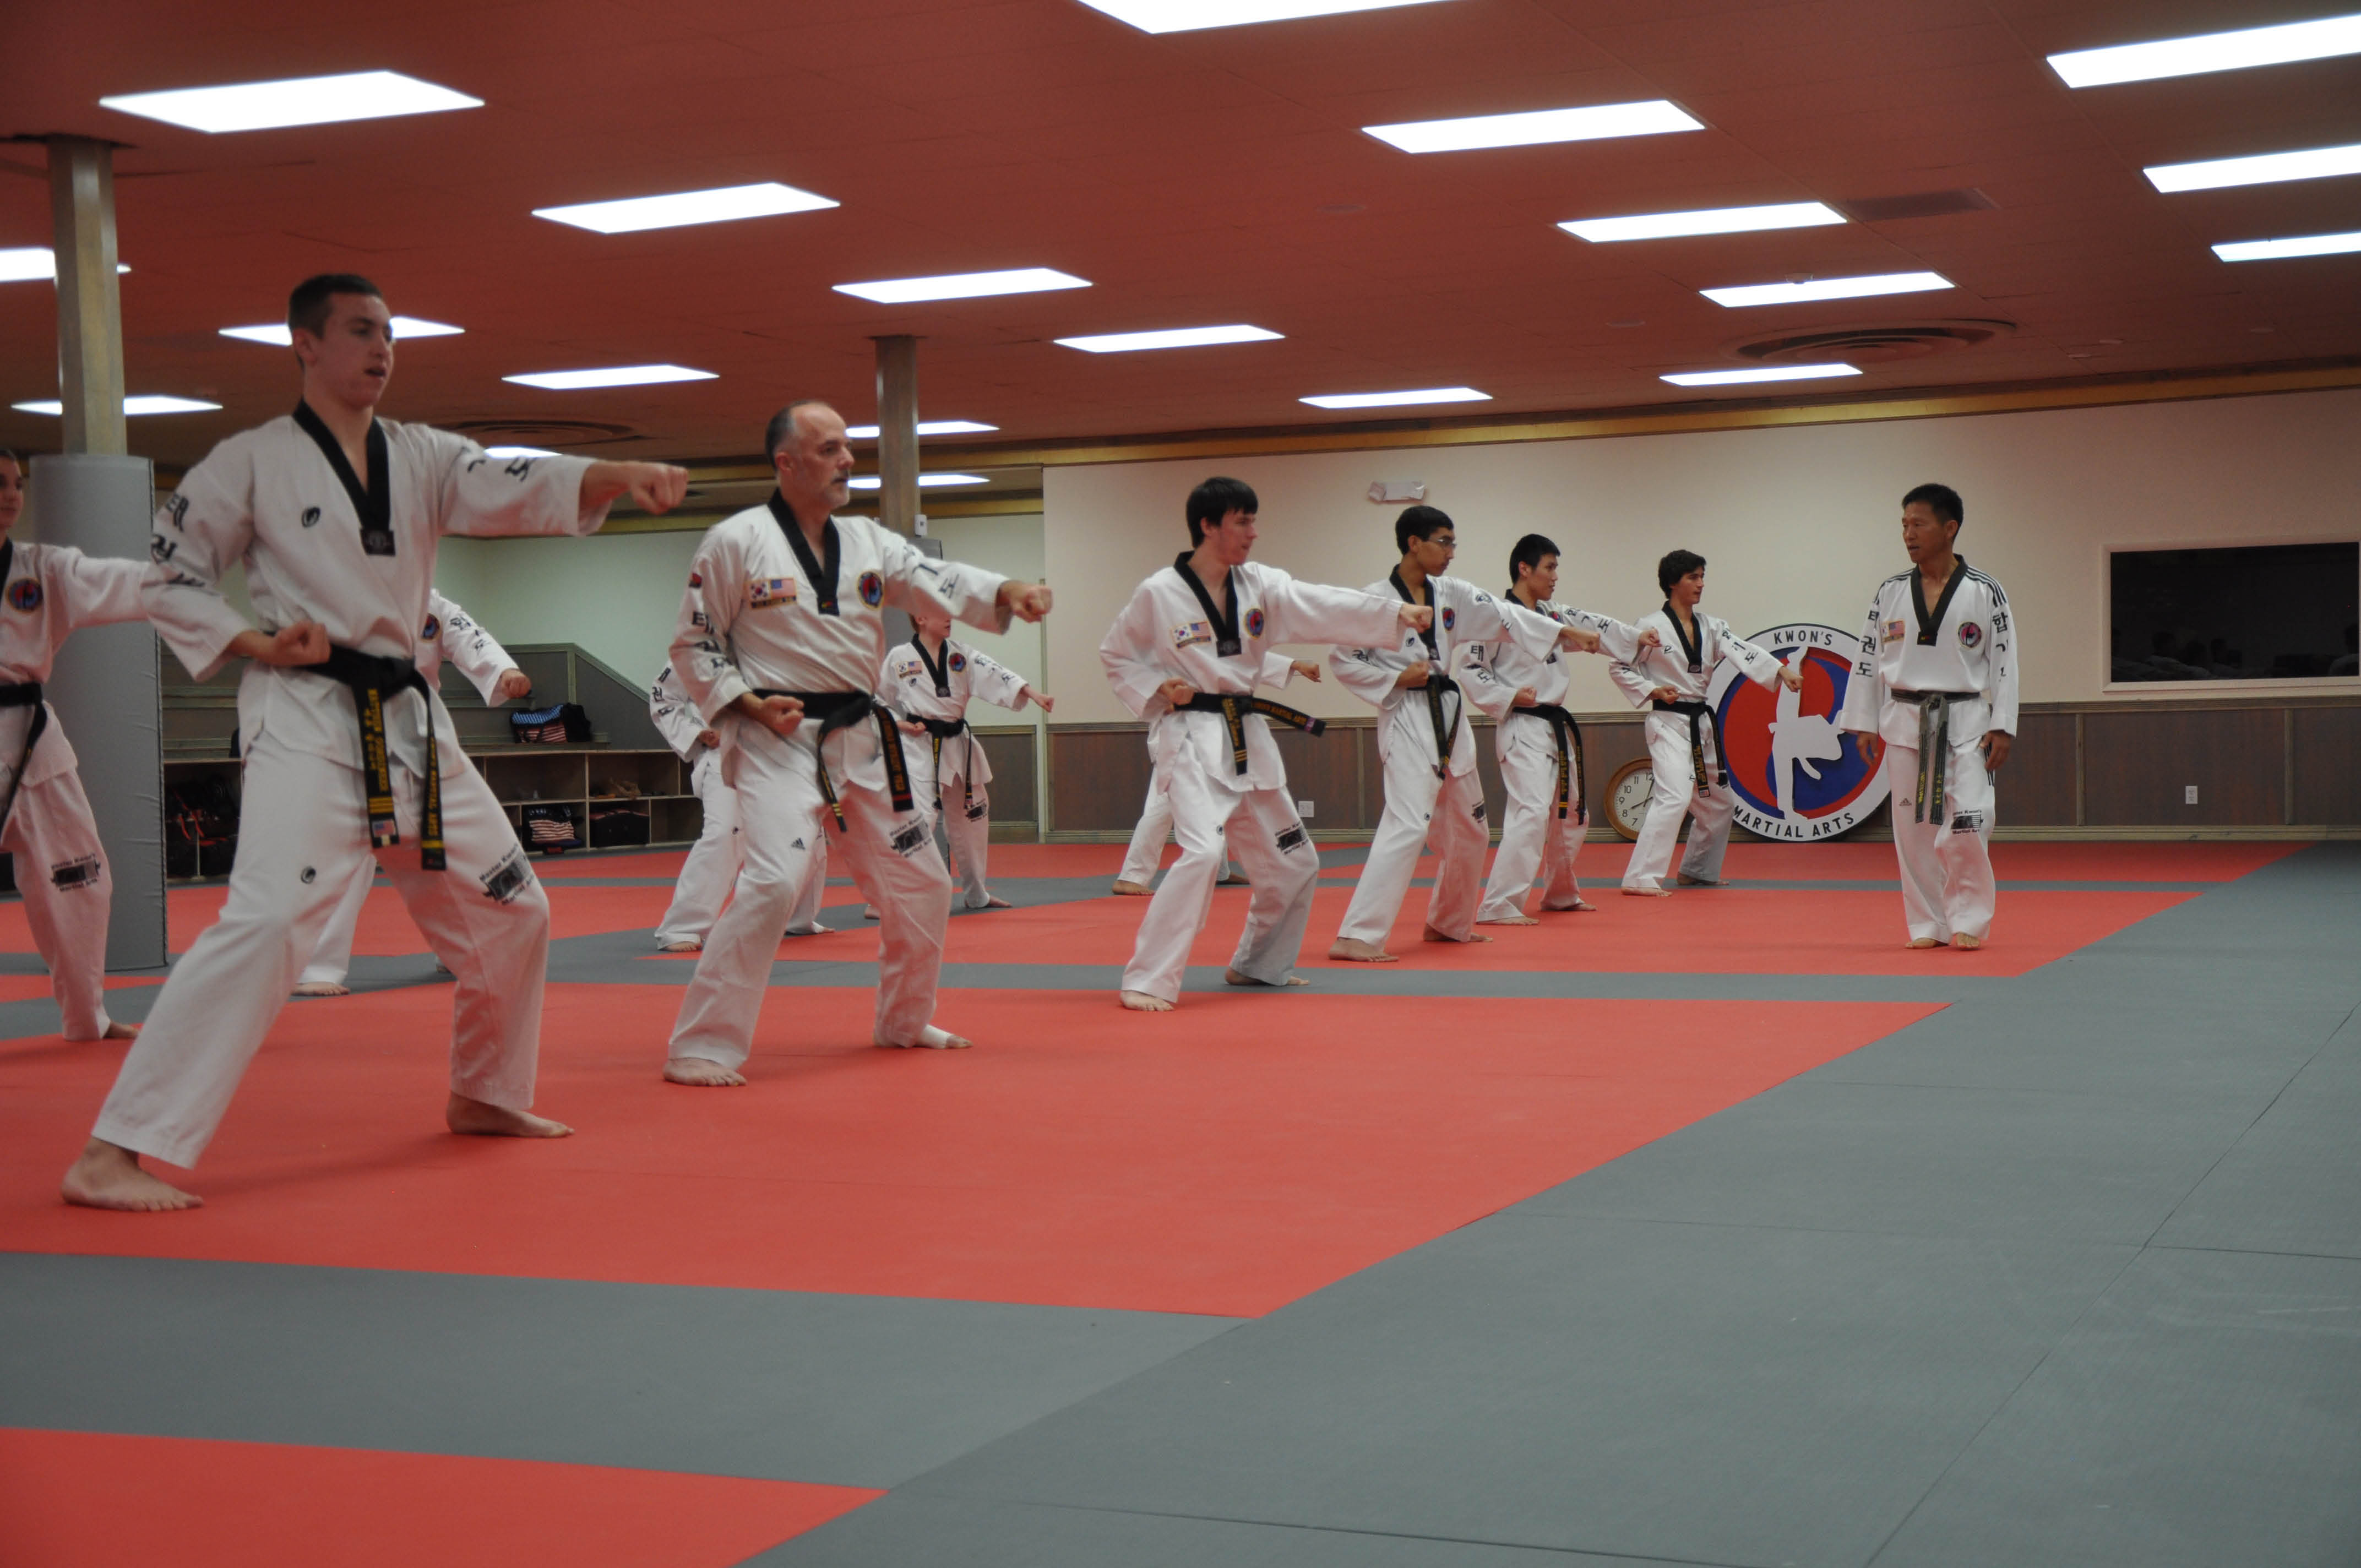 Adults learning martial arts